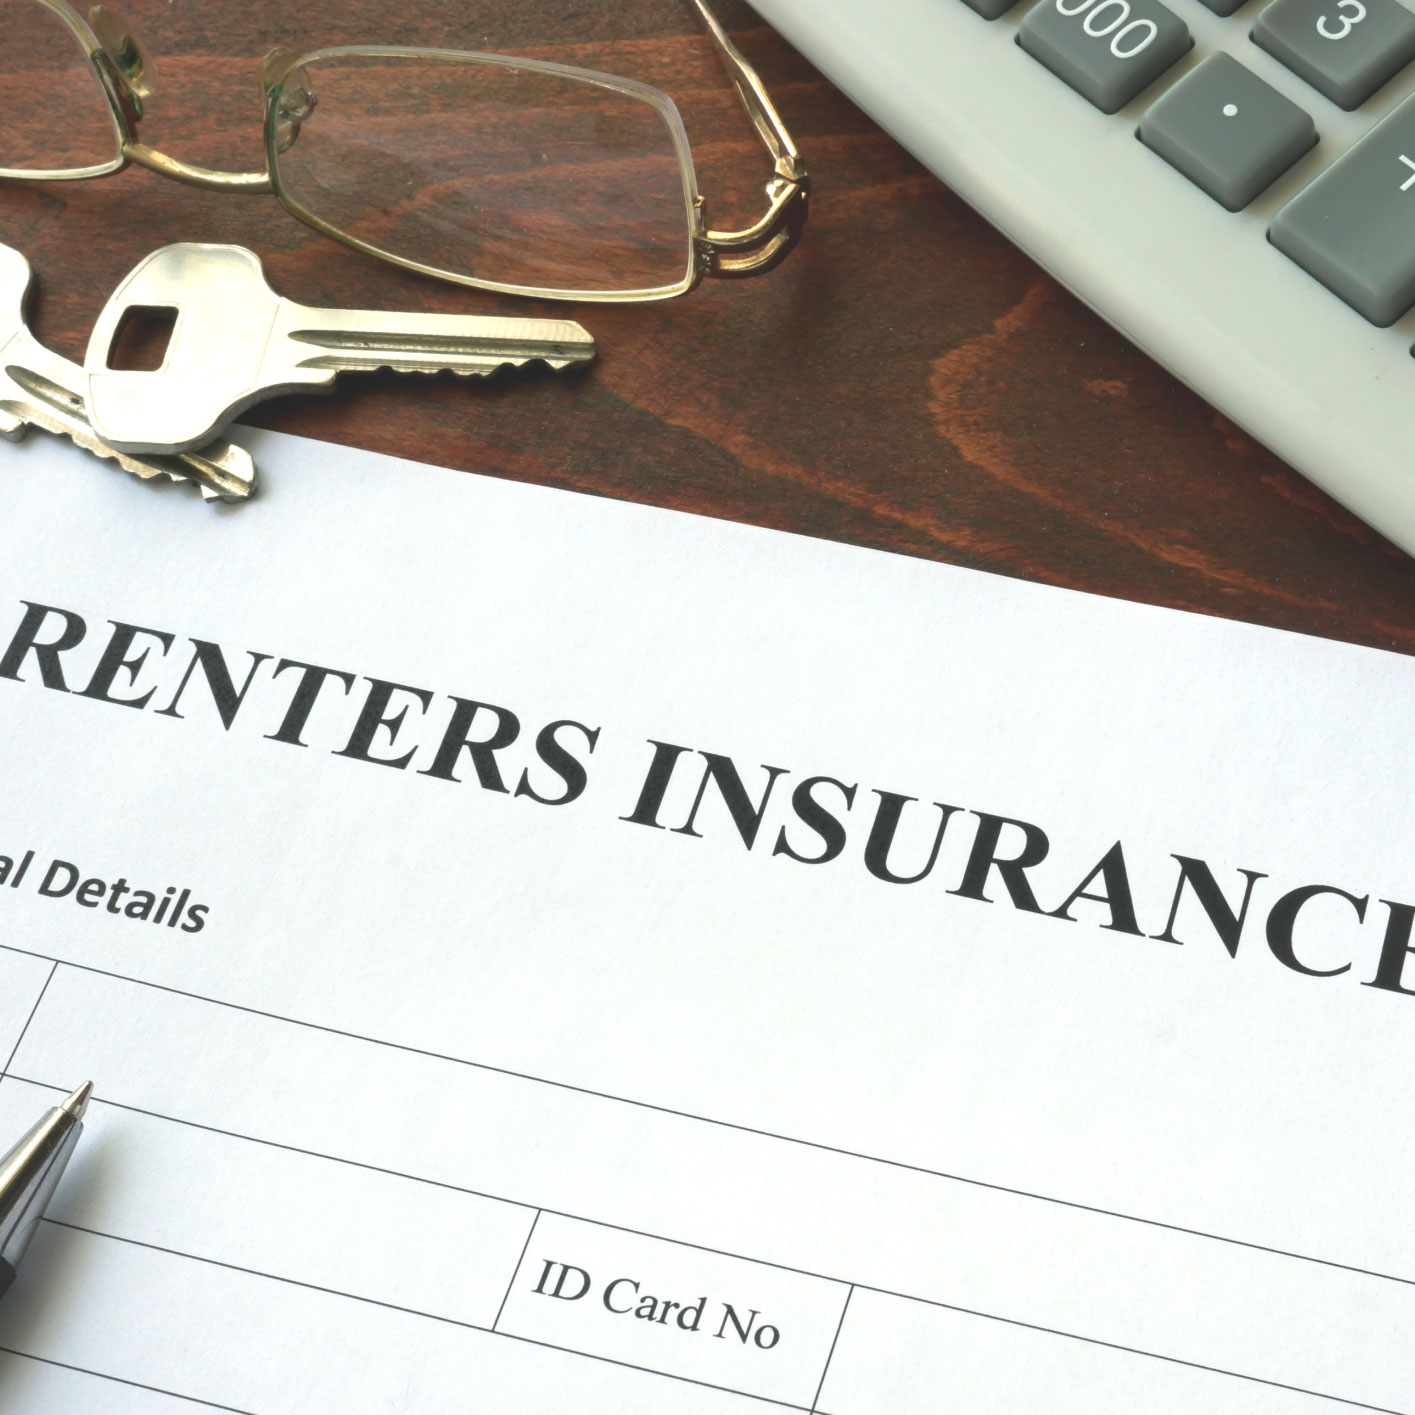 Renters Insurance - Do Landlords Require It?